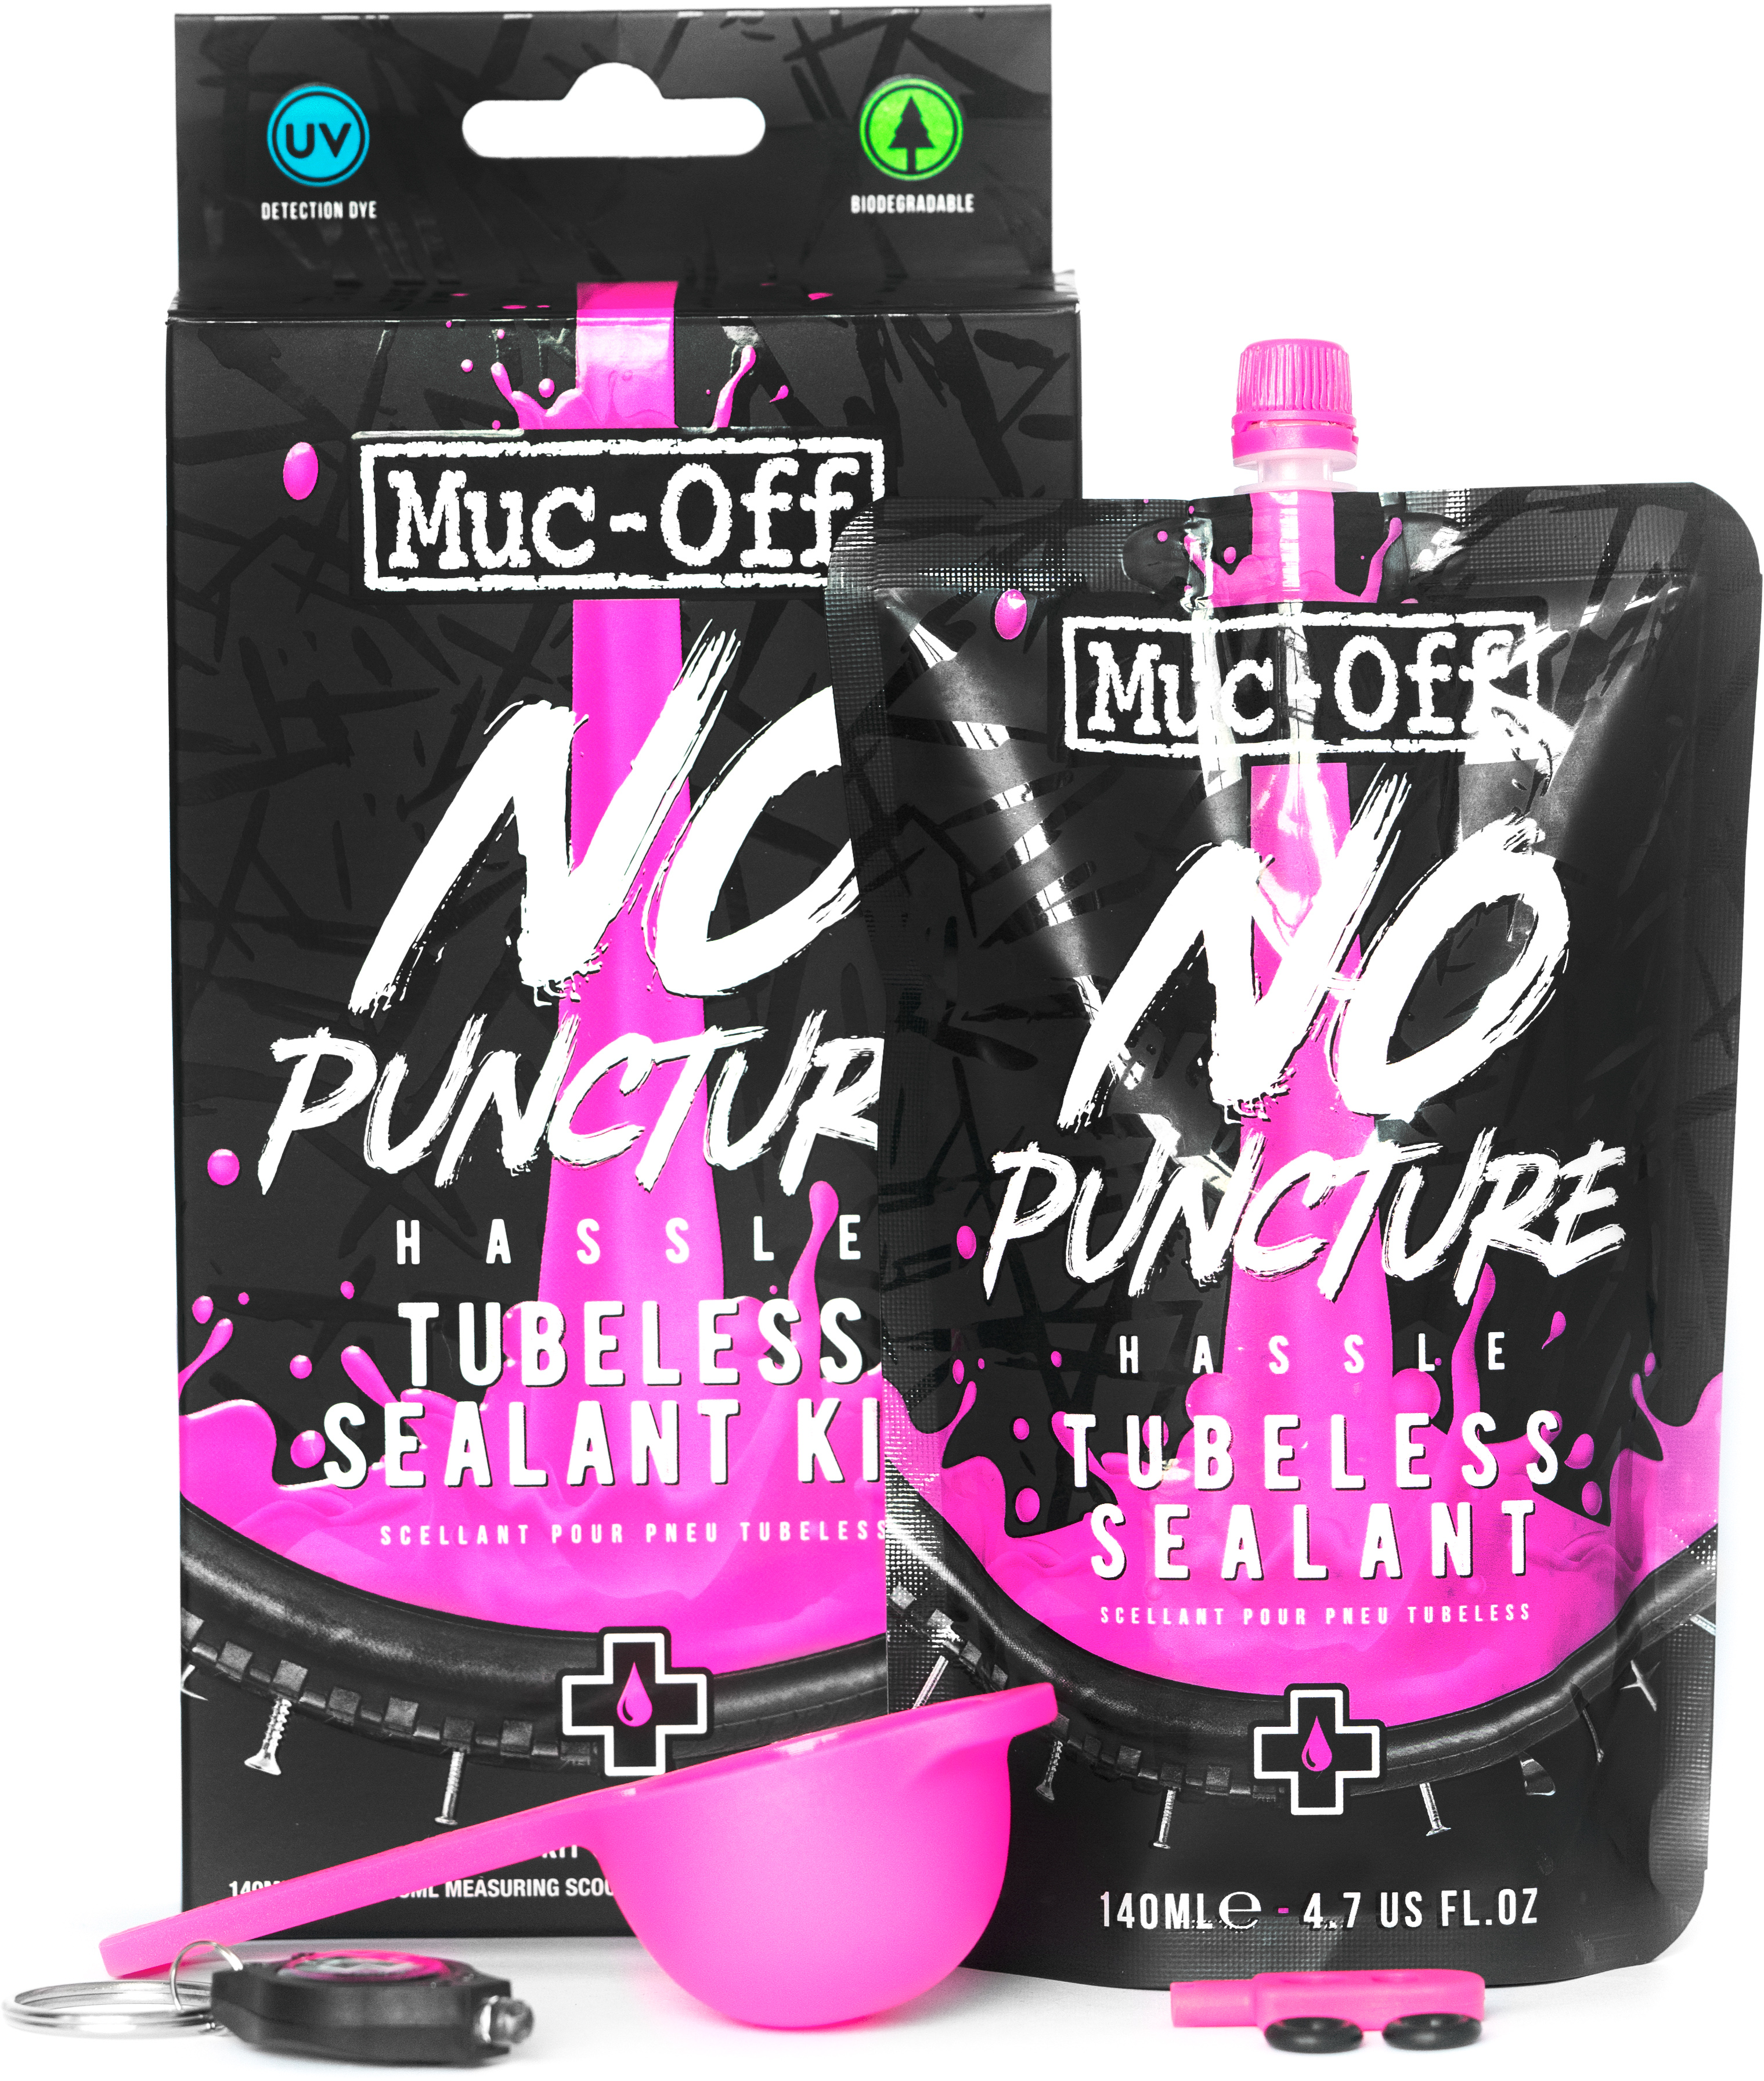 Muc-Off No Puncture Hassle 140ml Kit | Valve